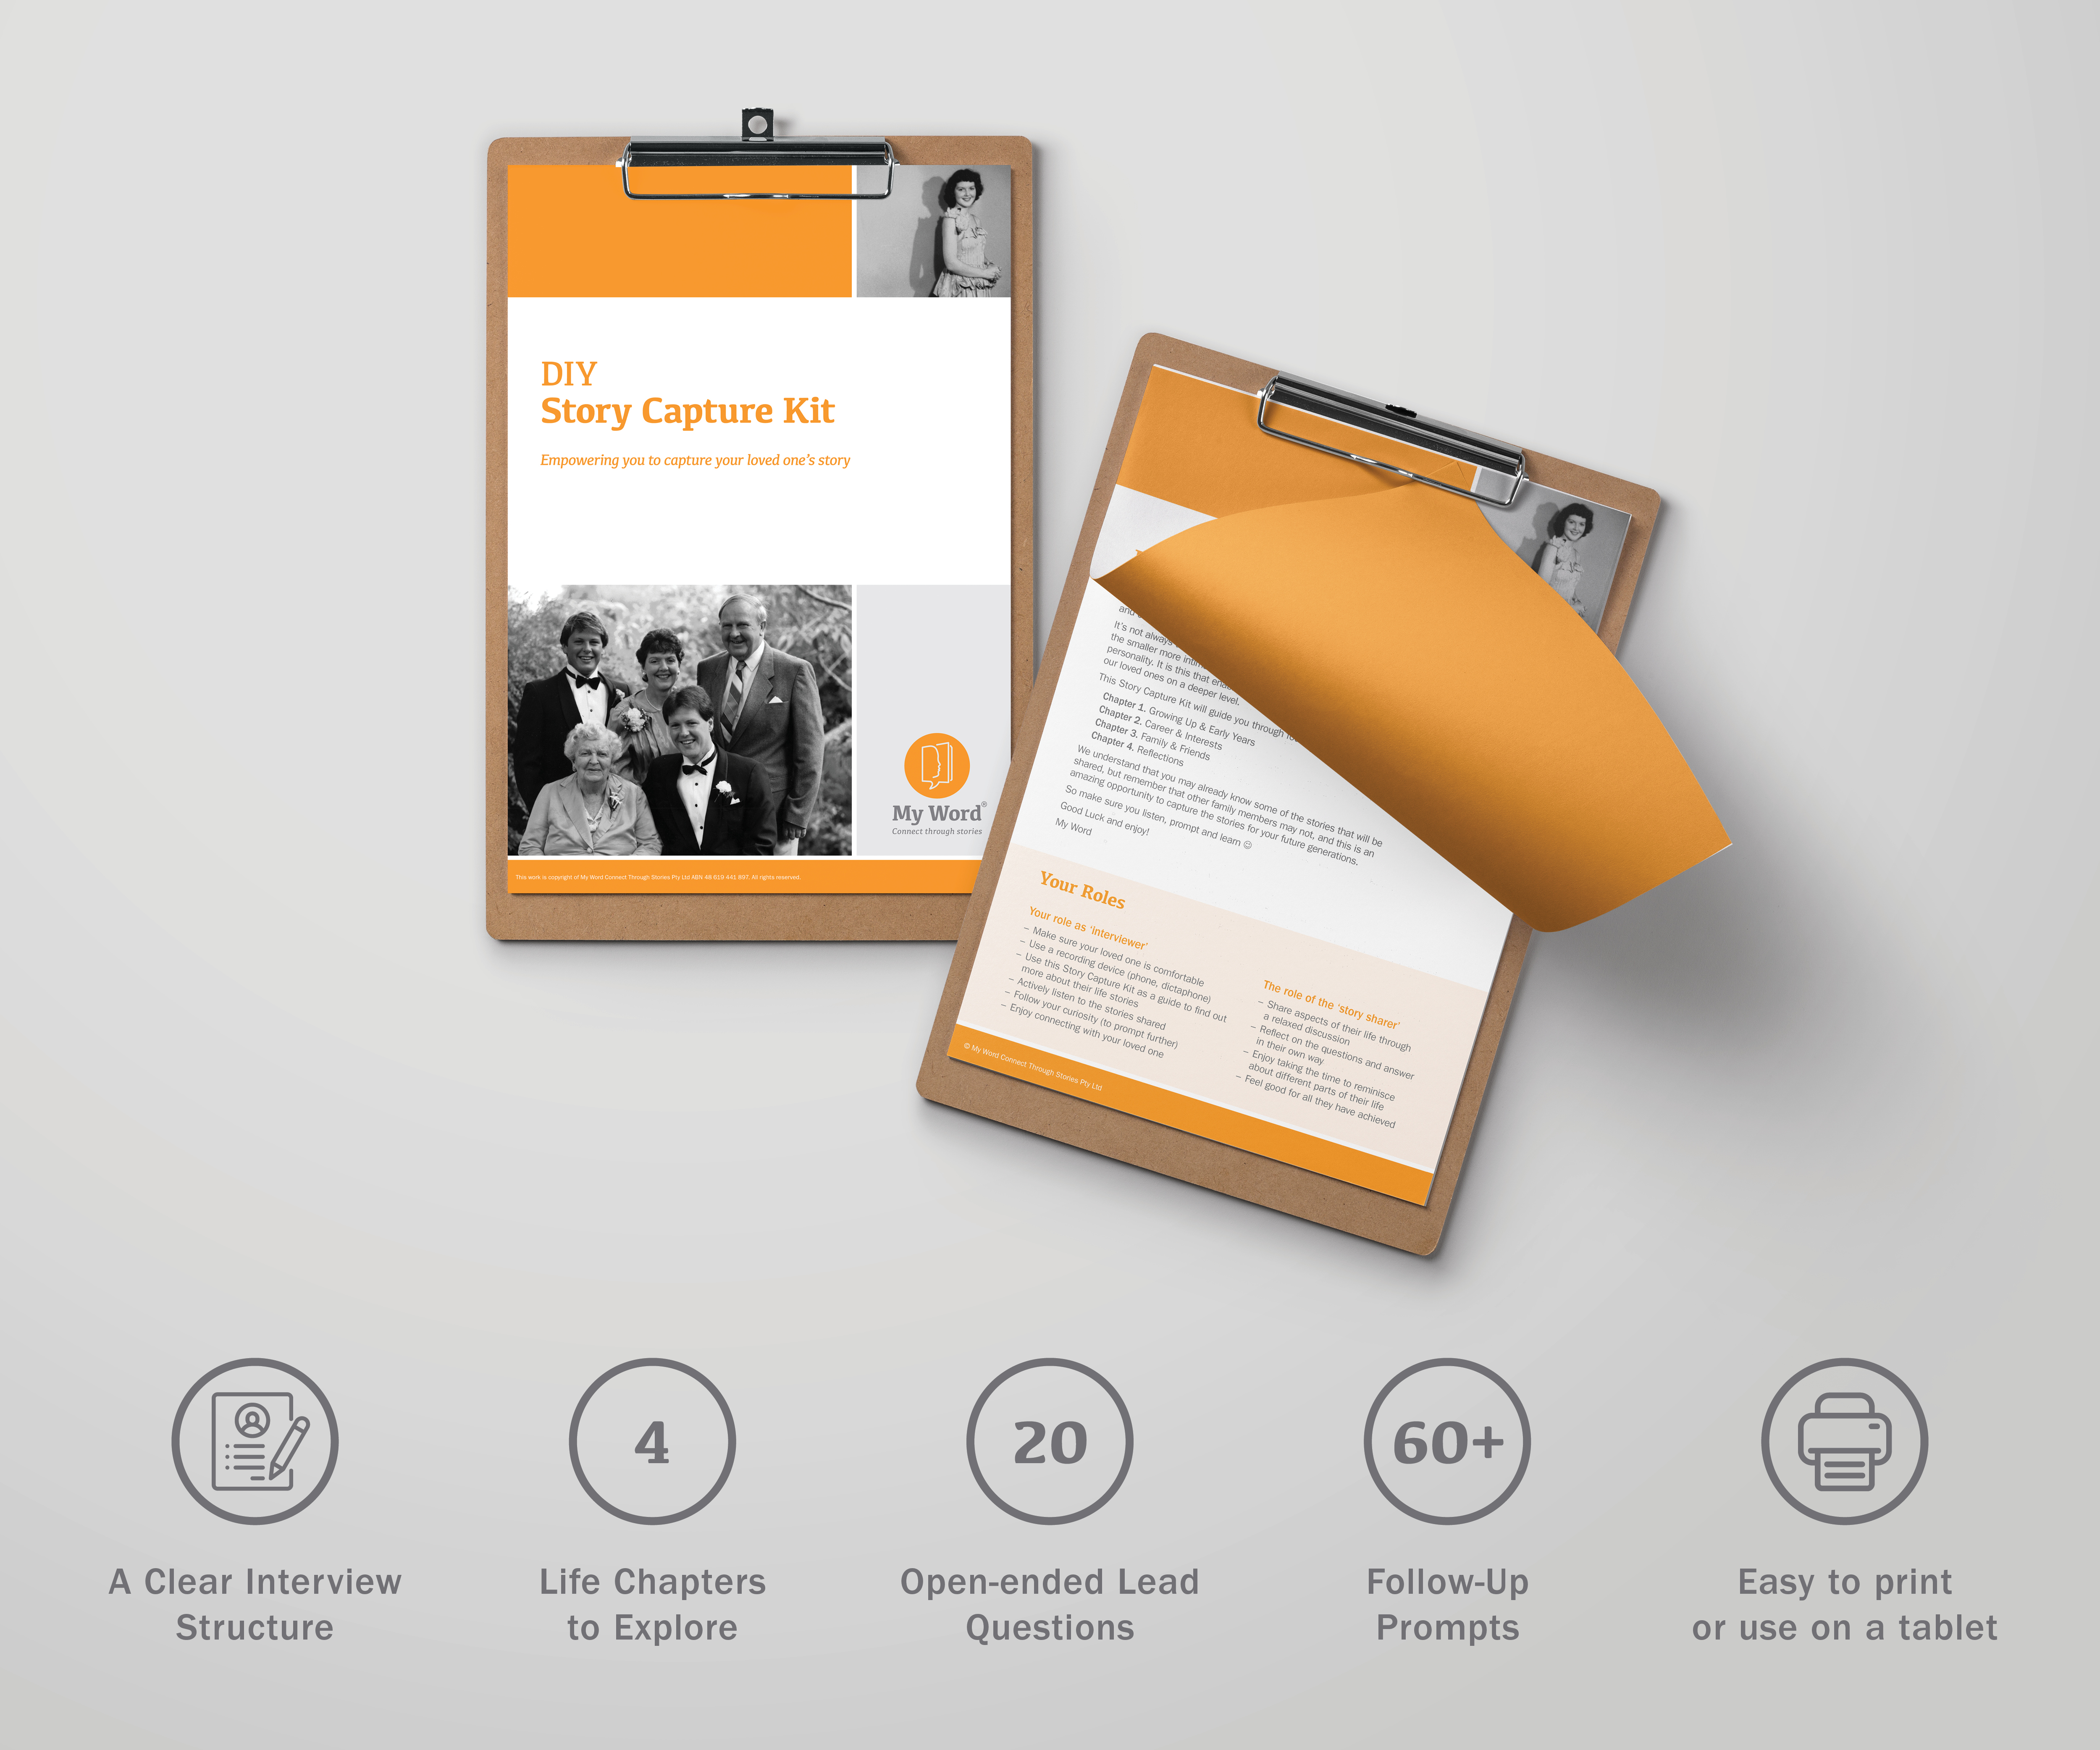 DIY Story Capture Kit interview and capture the story of your loved one